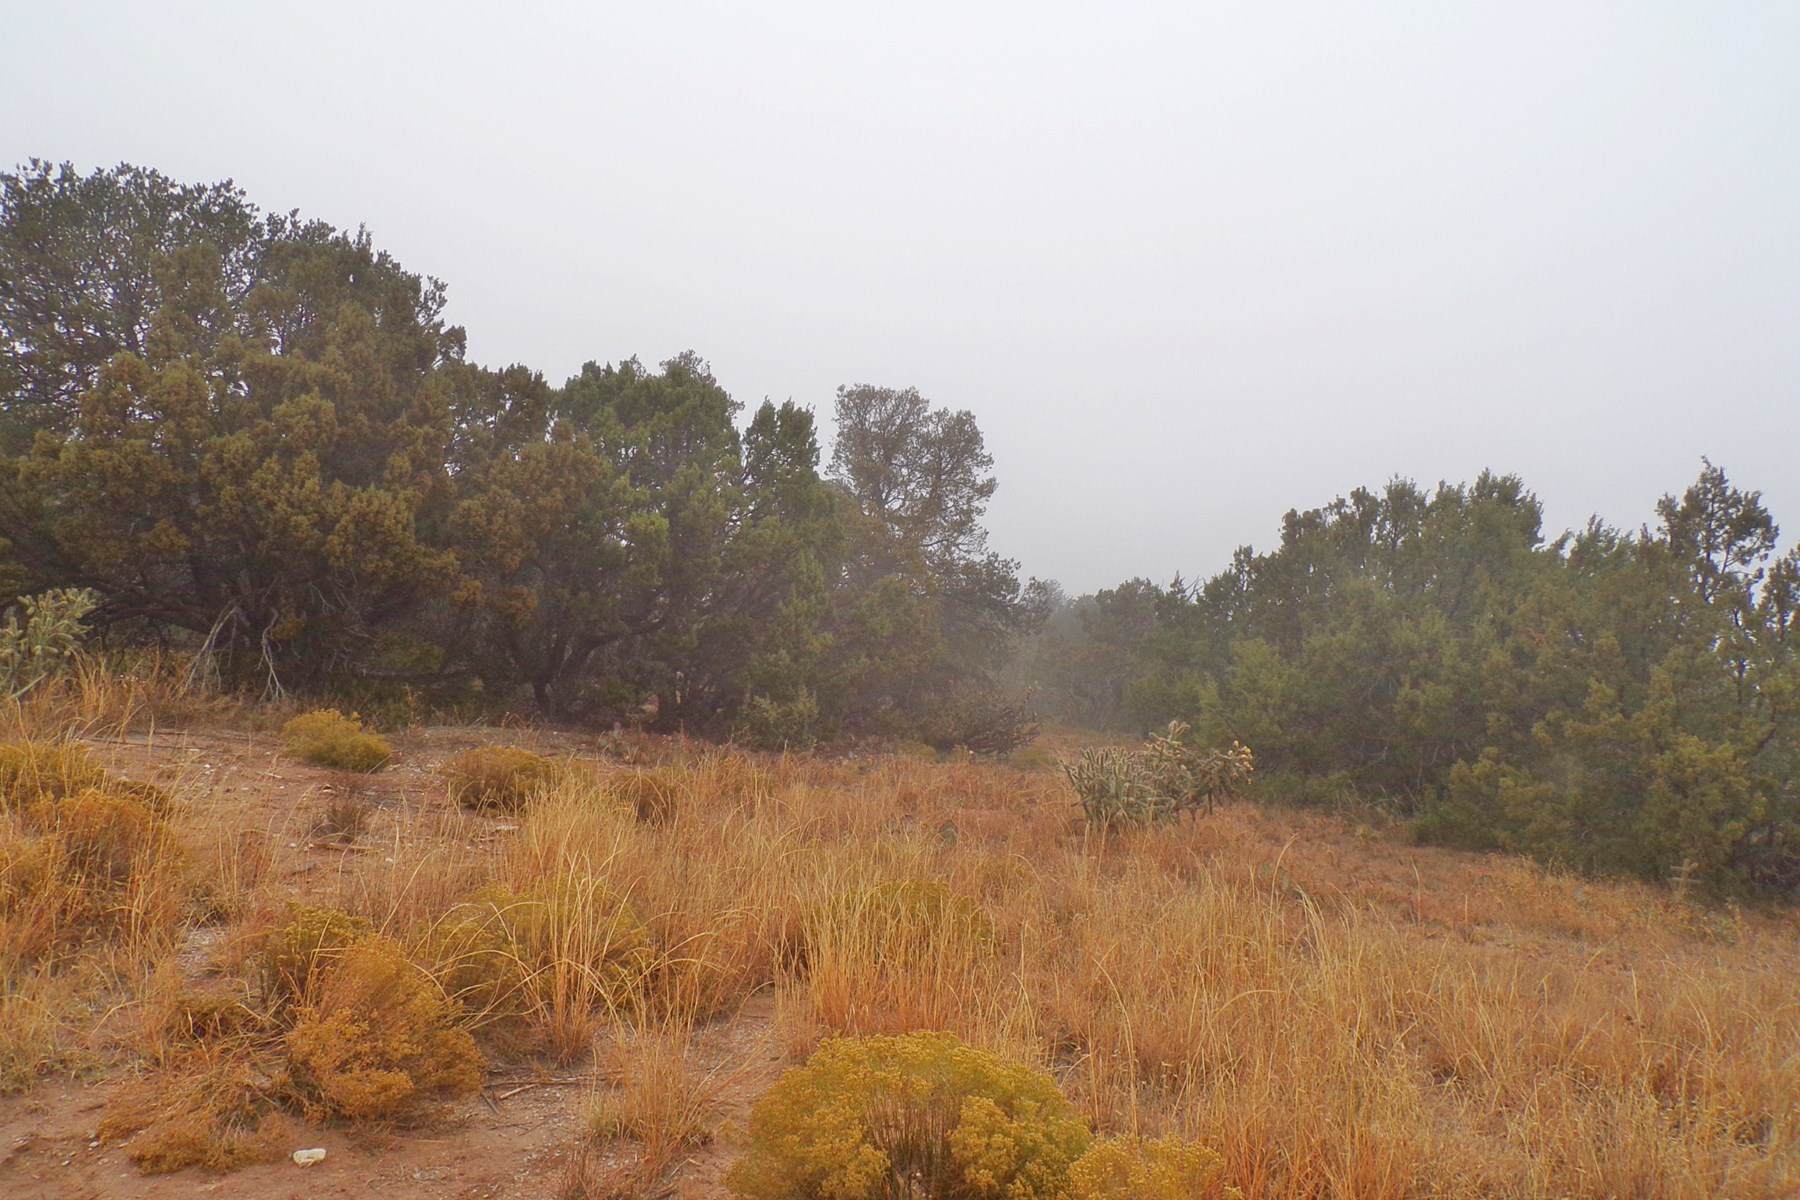 NM Vacant Land For Sale Wooded Off-Grid Secluded Tijeras